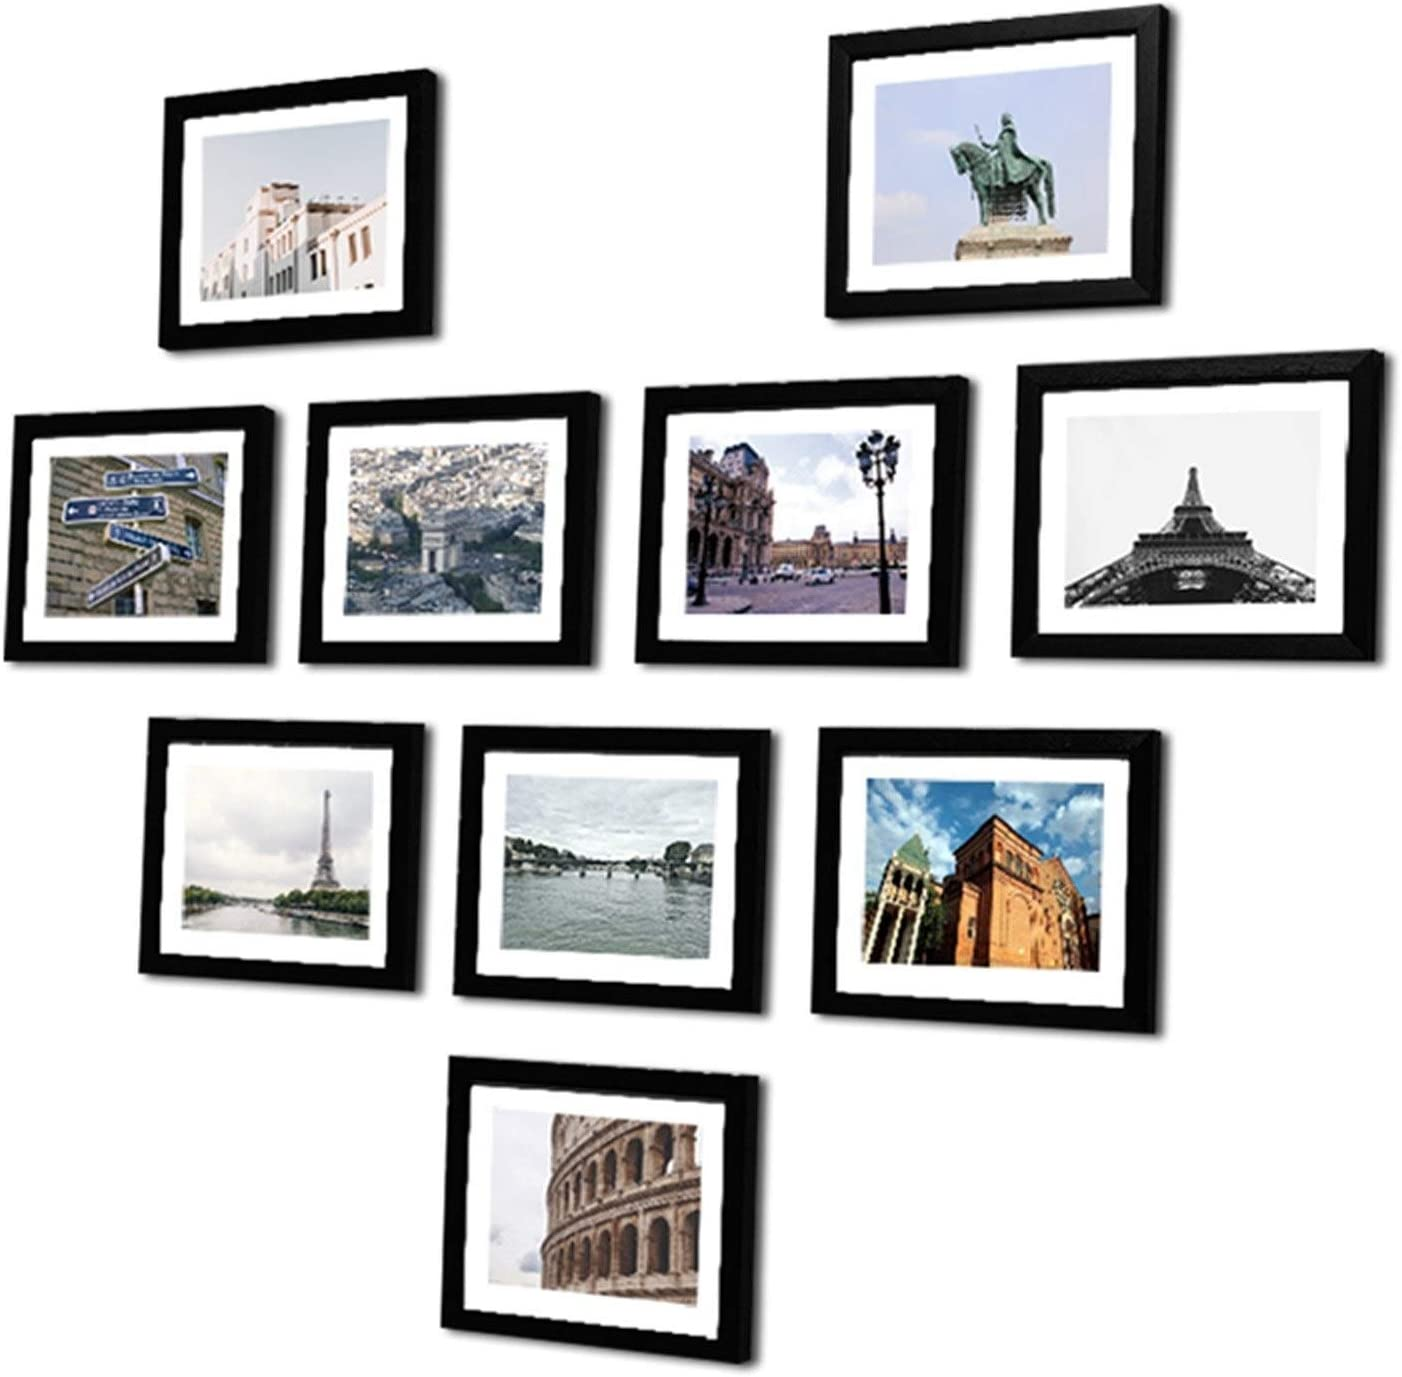 XIALITR Photo Cash special price Frame 10 Pcs Max 40% OFF Pictures Wall Wooden for